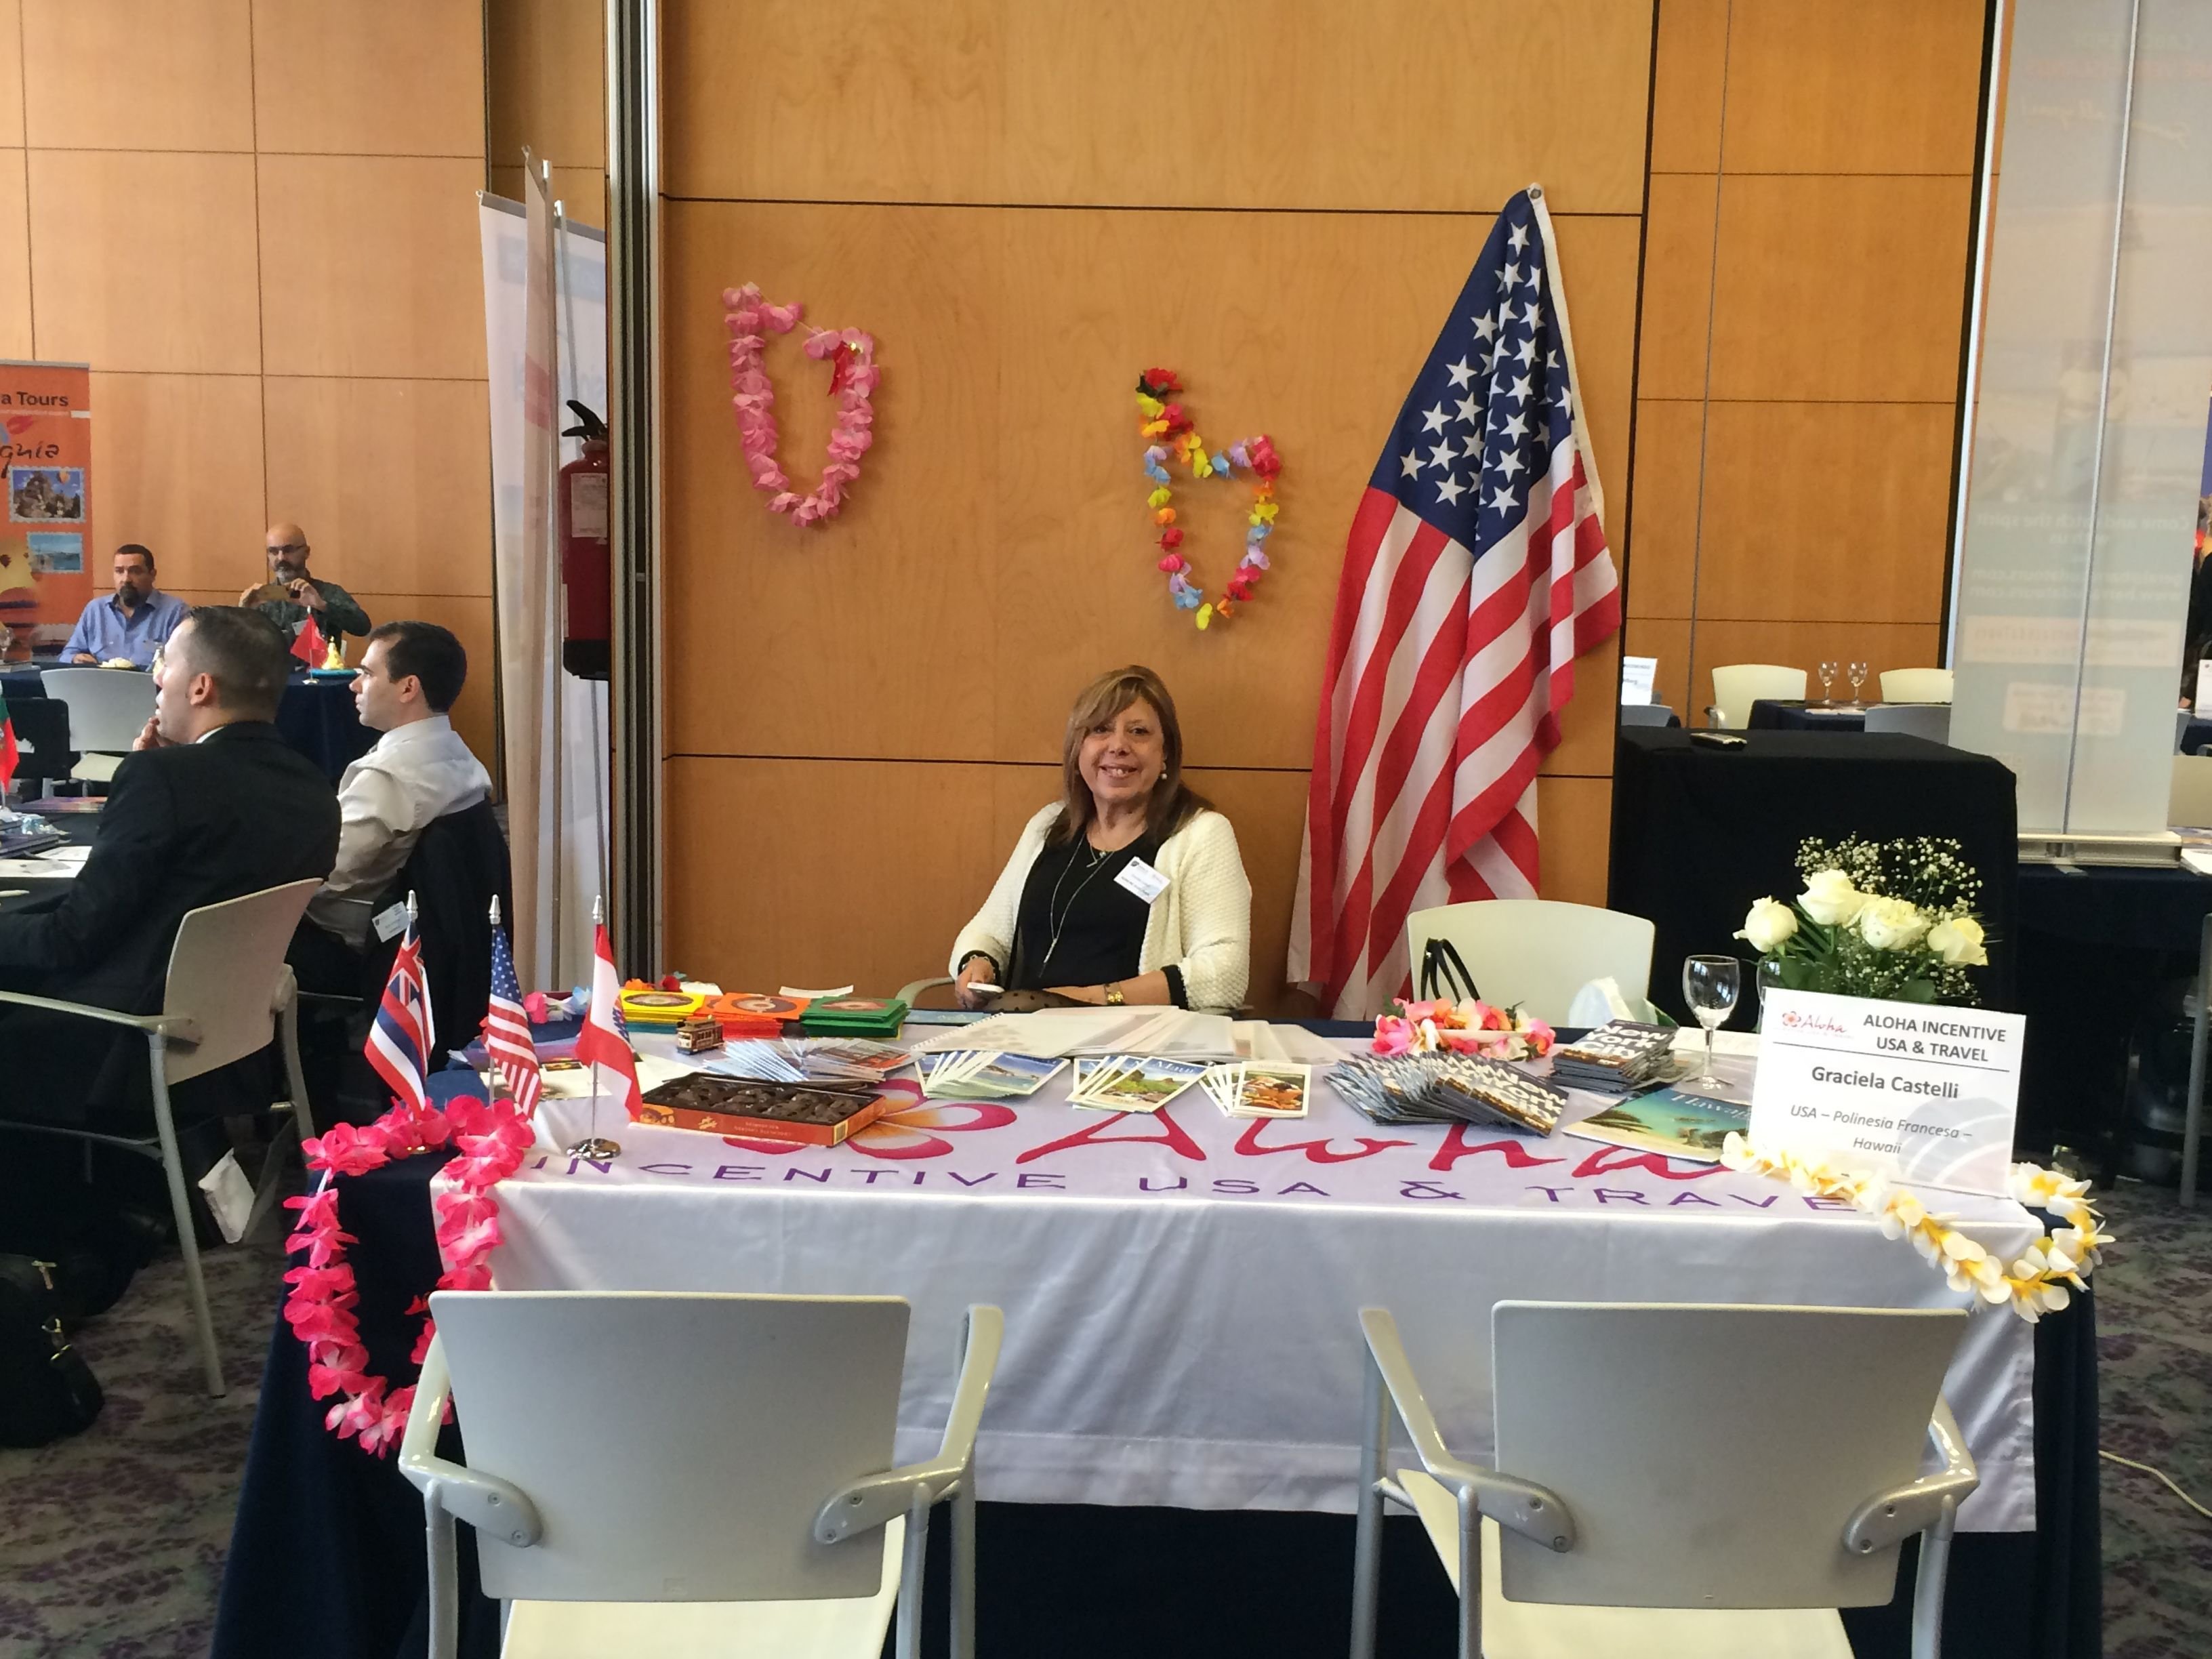 Graciela, de USA, Polinesia y Hawaii en un vistoso stand!